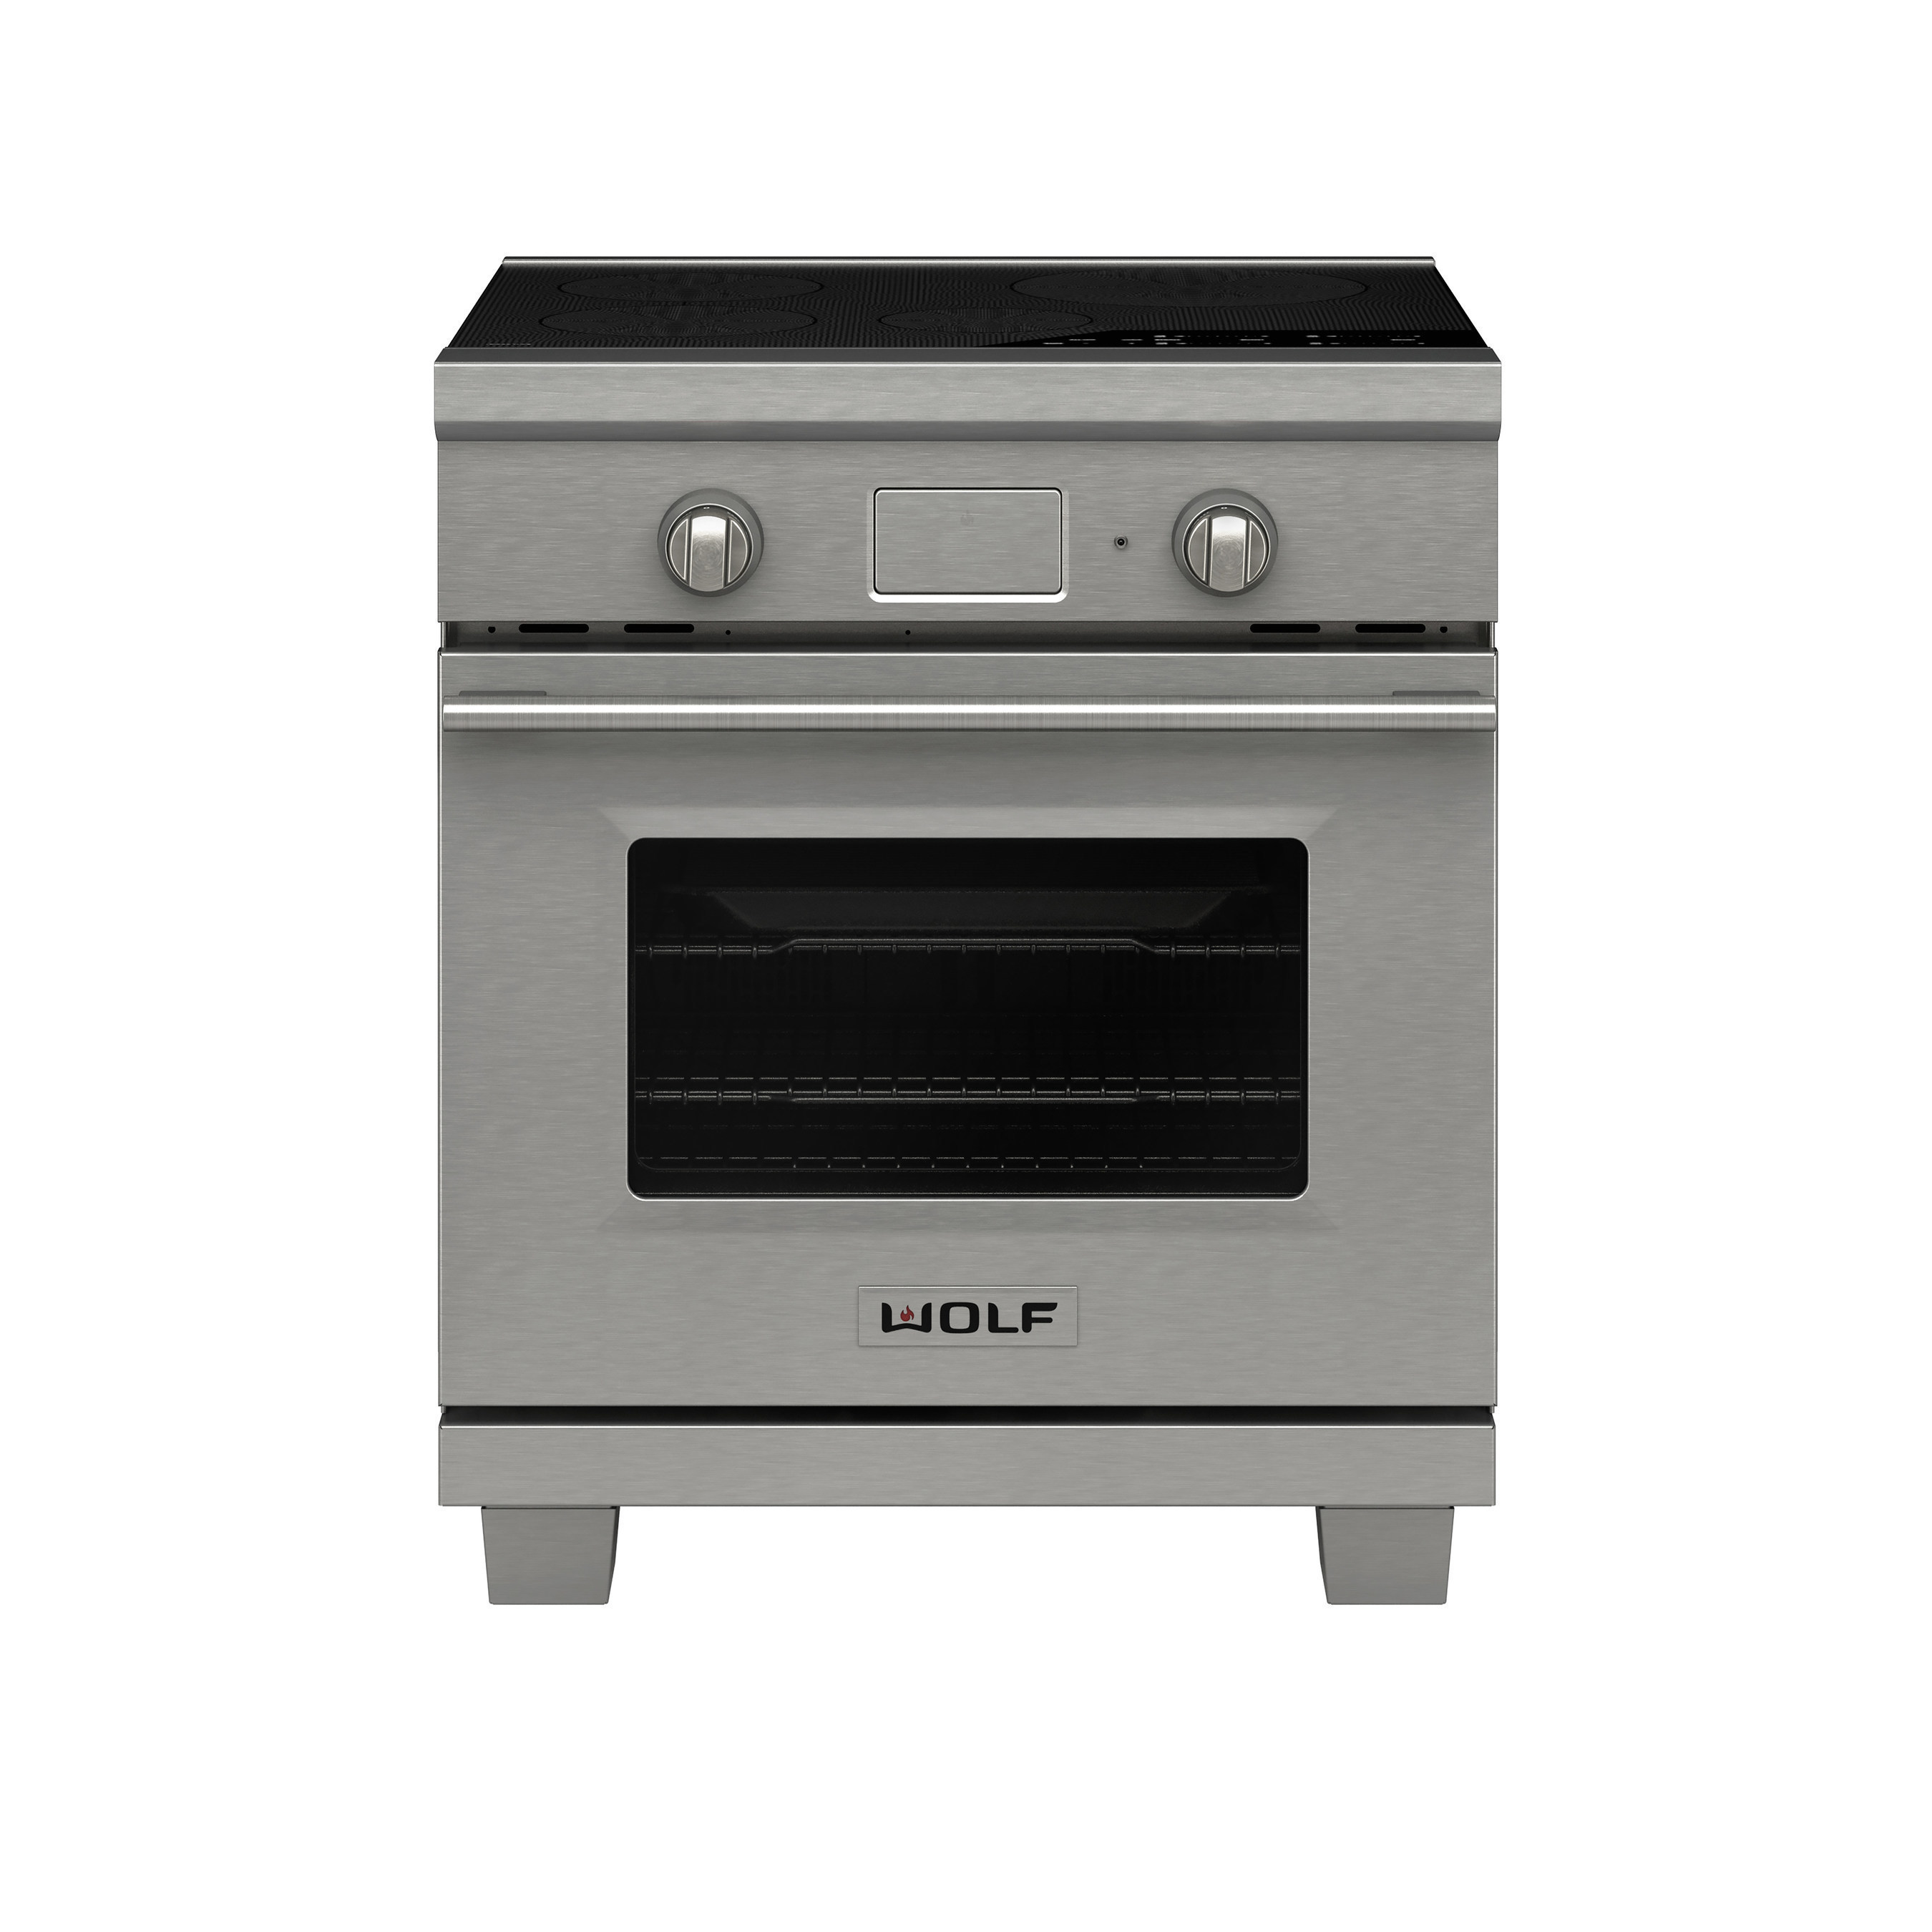 "New Wolf 30"" transitional induction range"